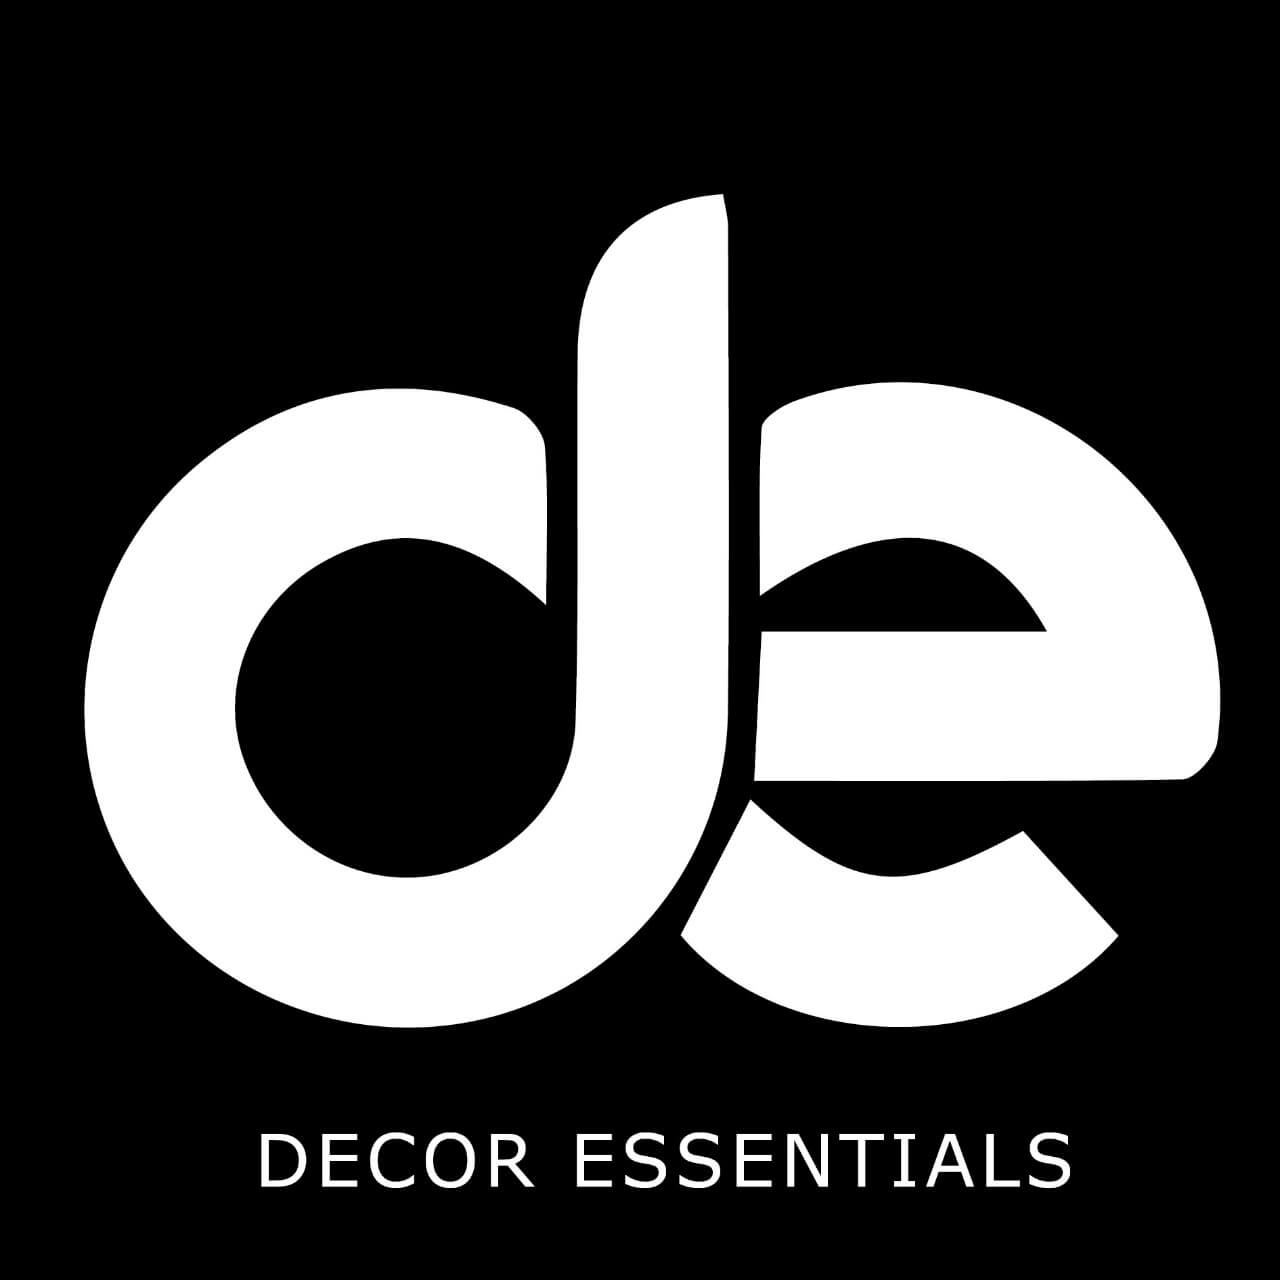 Find Decor Essentials's adverts listed on Junk Mail